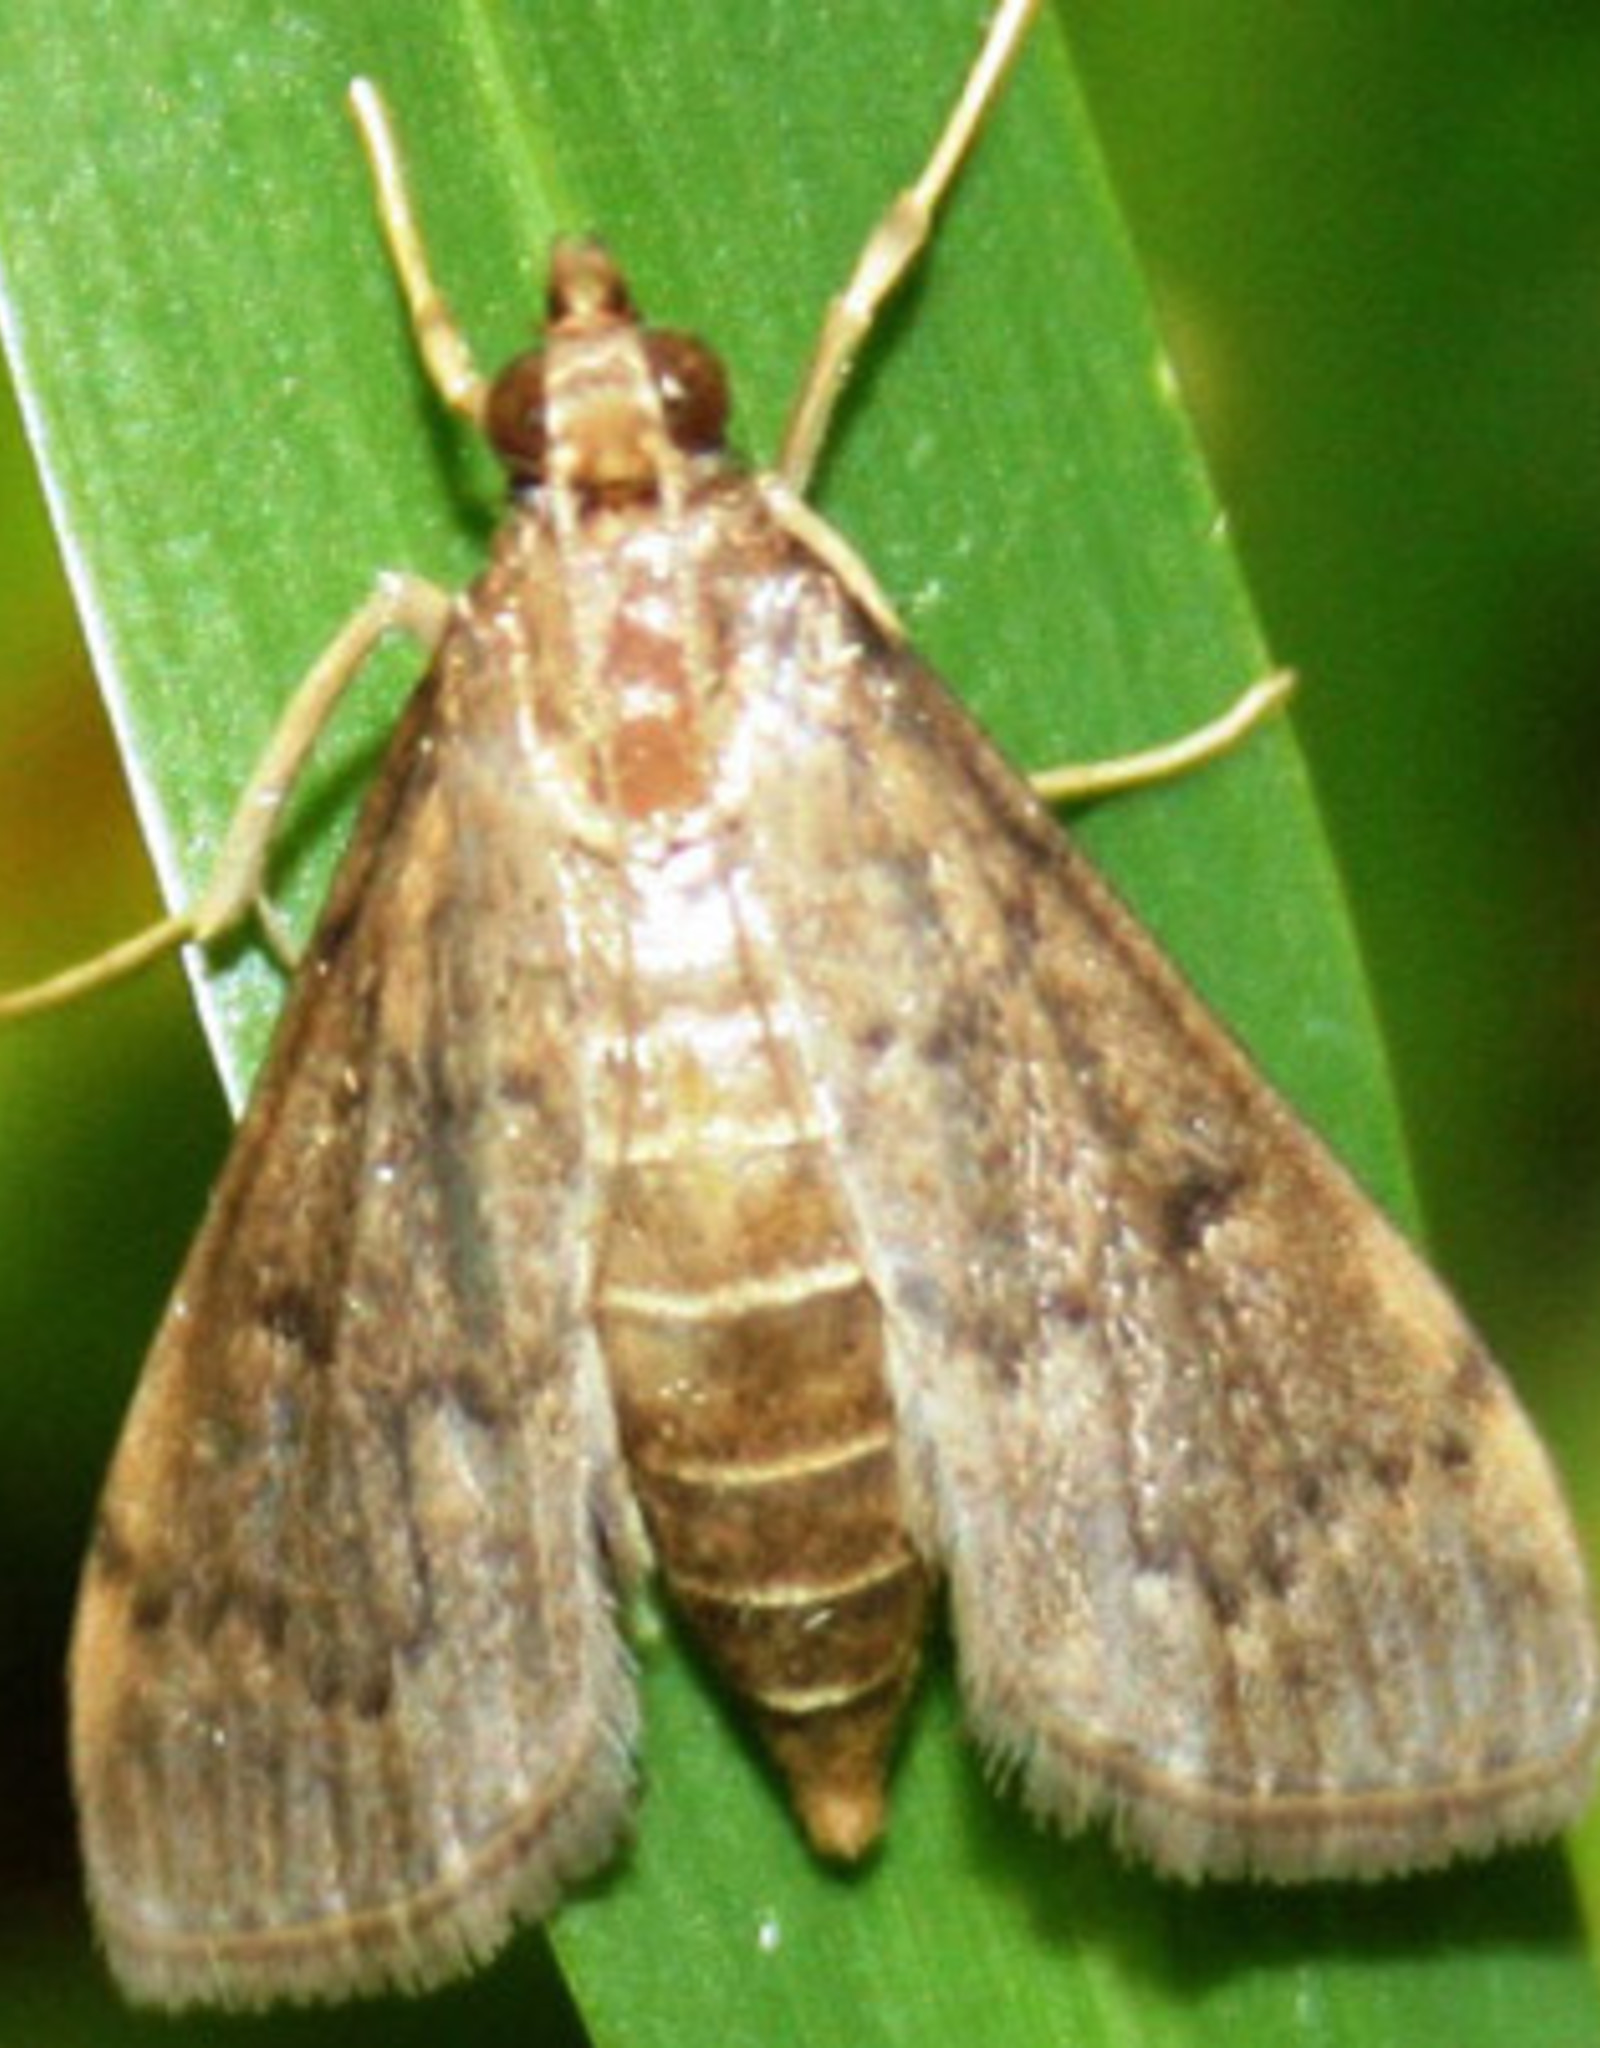 Insect, Lawn, Sod Webworm